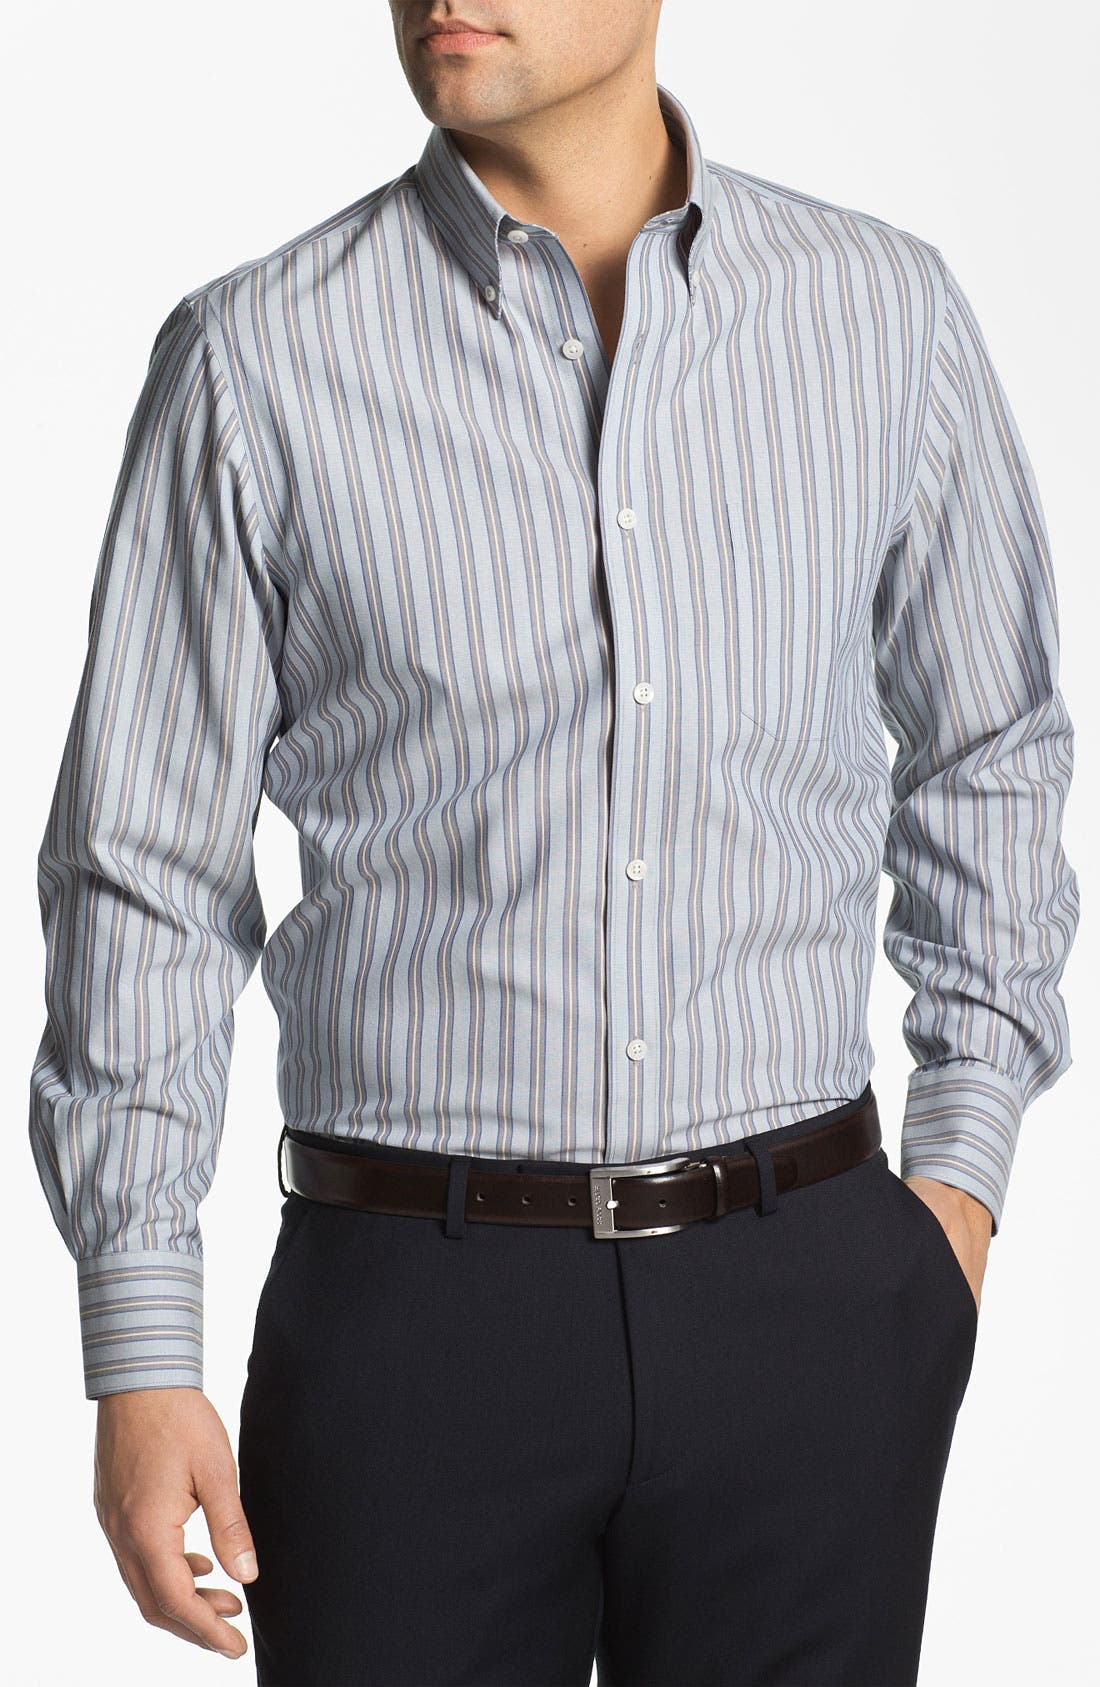 Alternate Image 1 Selected - Nordstrom Regular Fit Sport Shirt